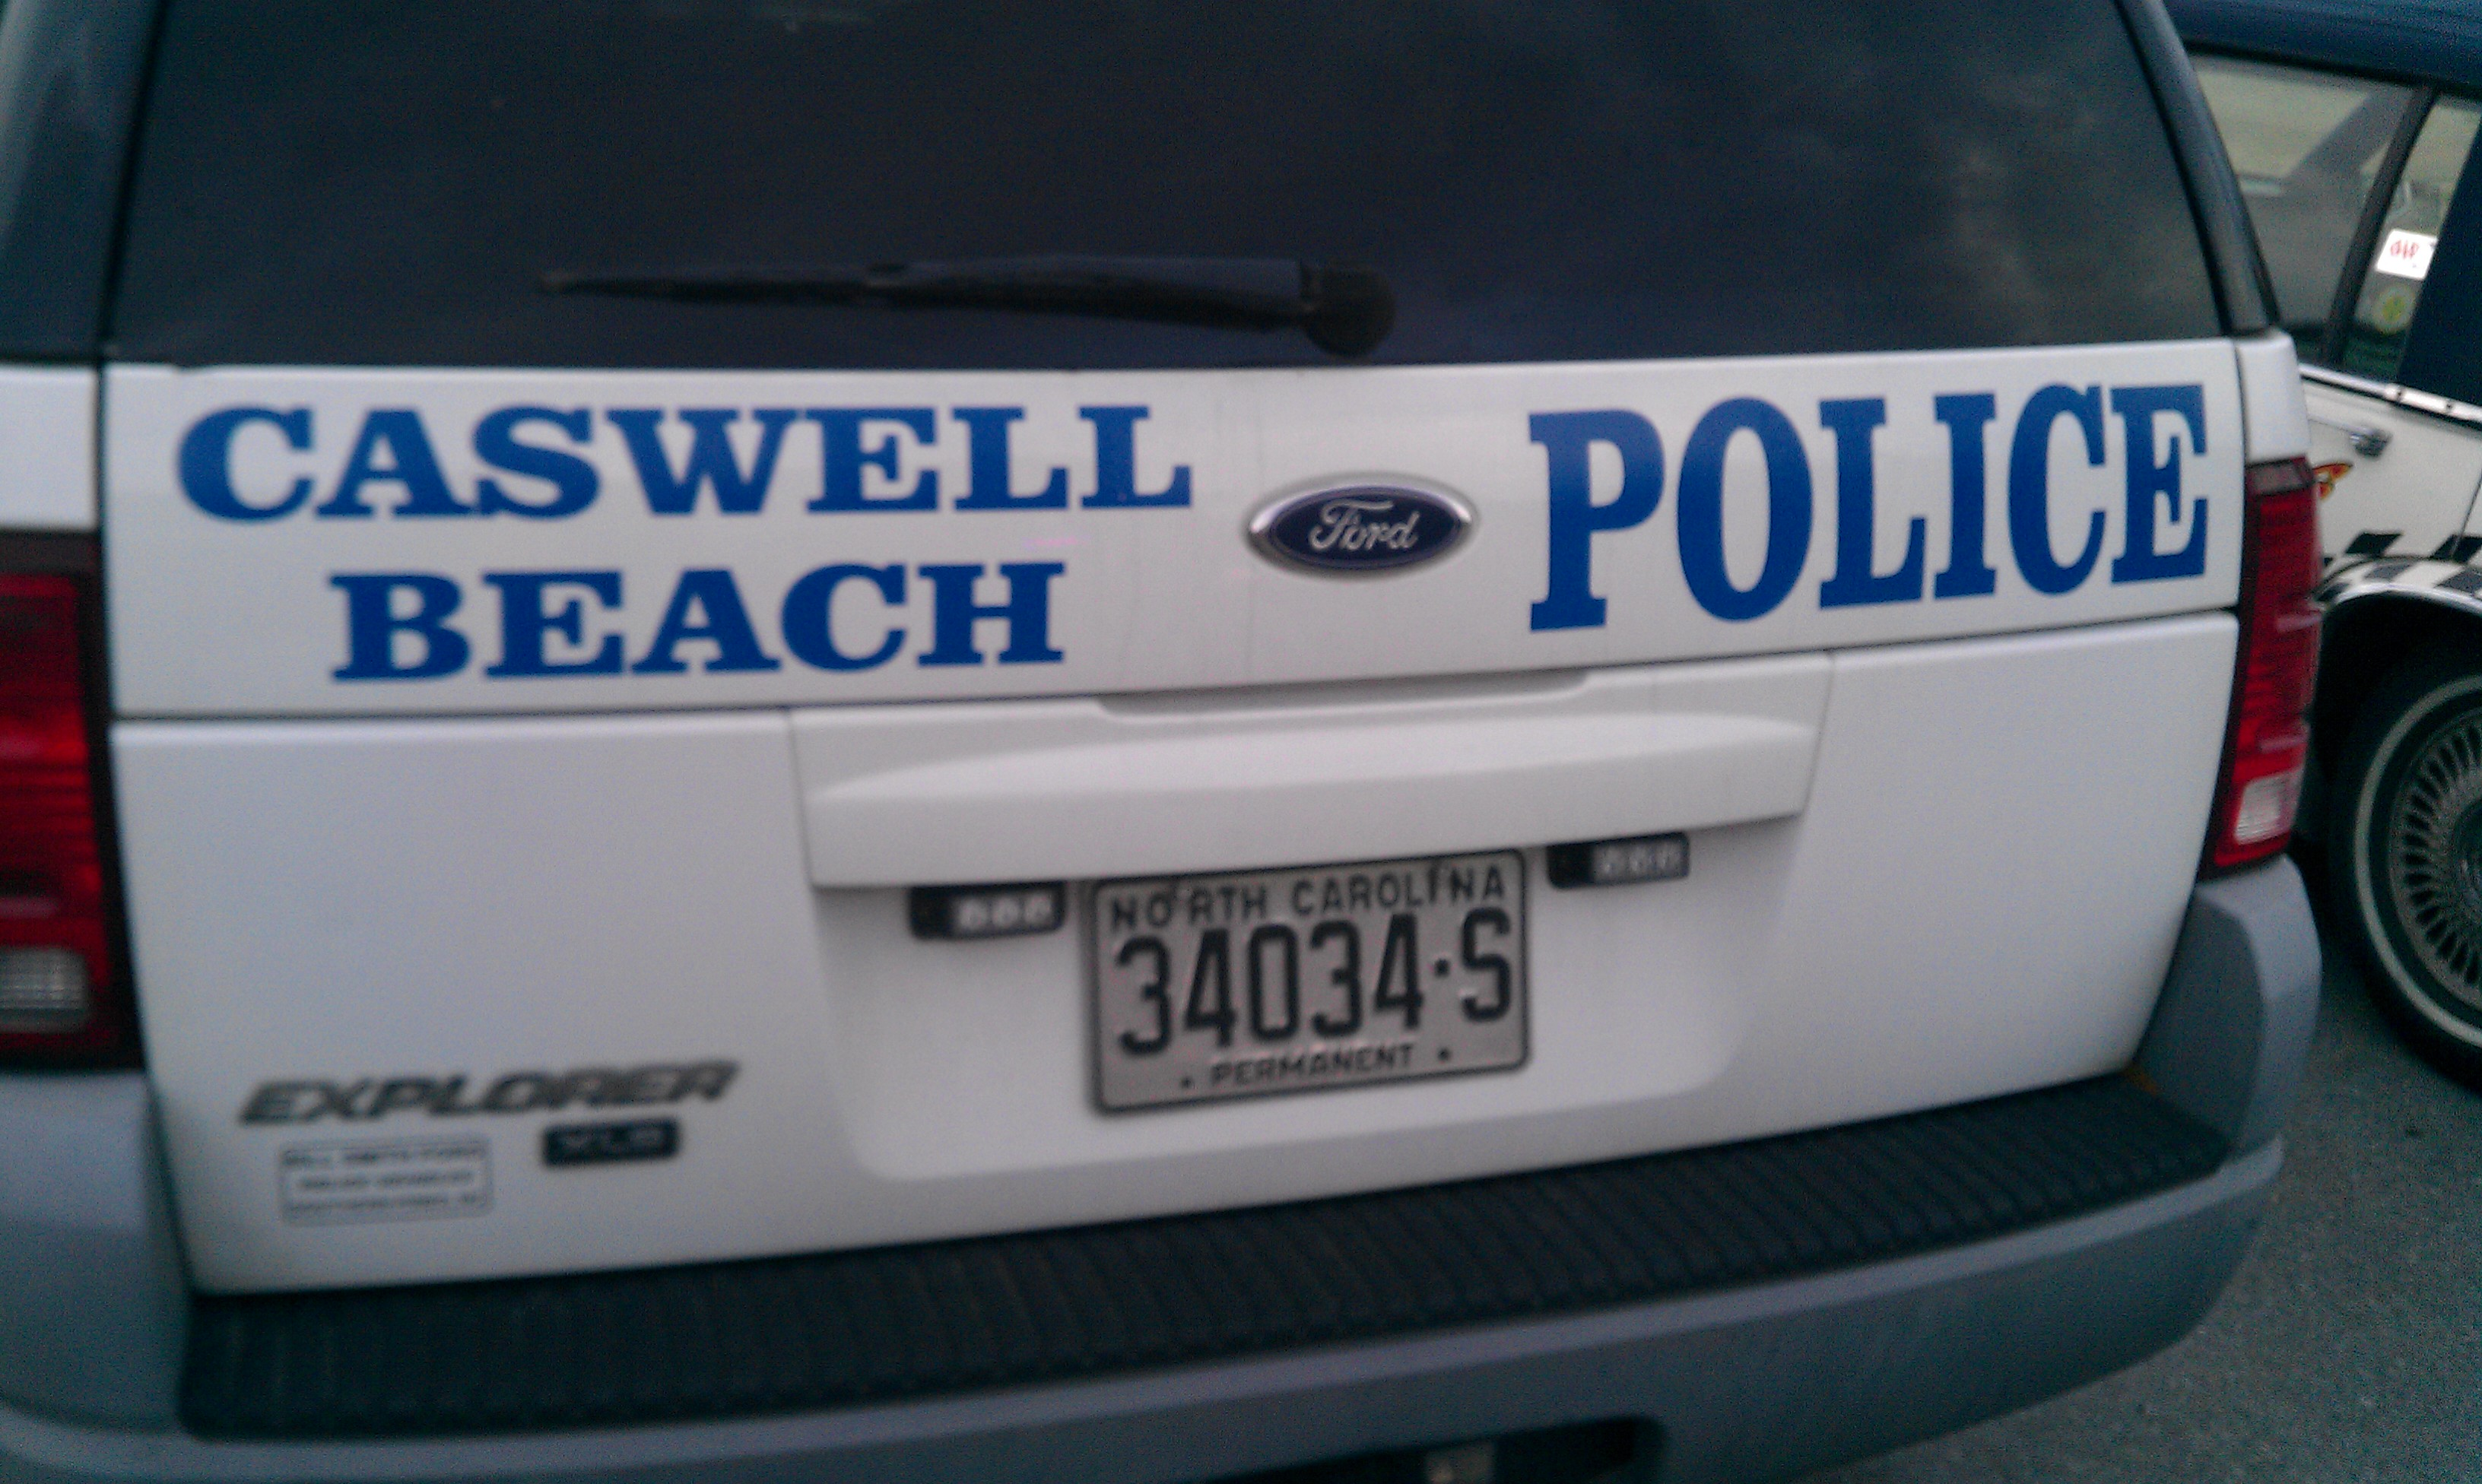 Caswell Beach Police Explorer Decal